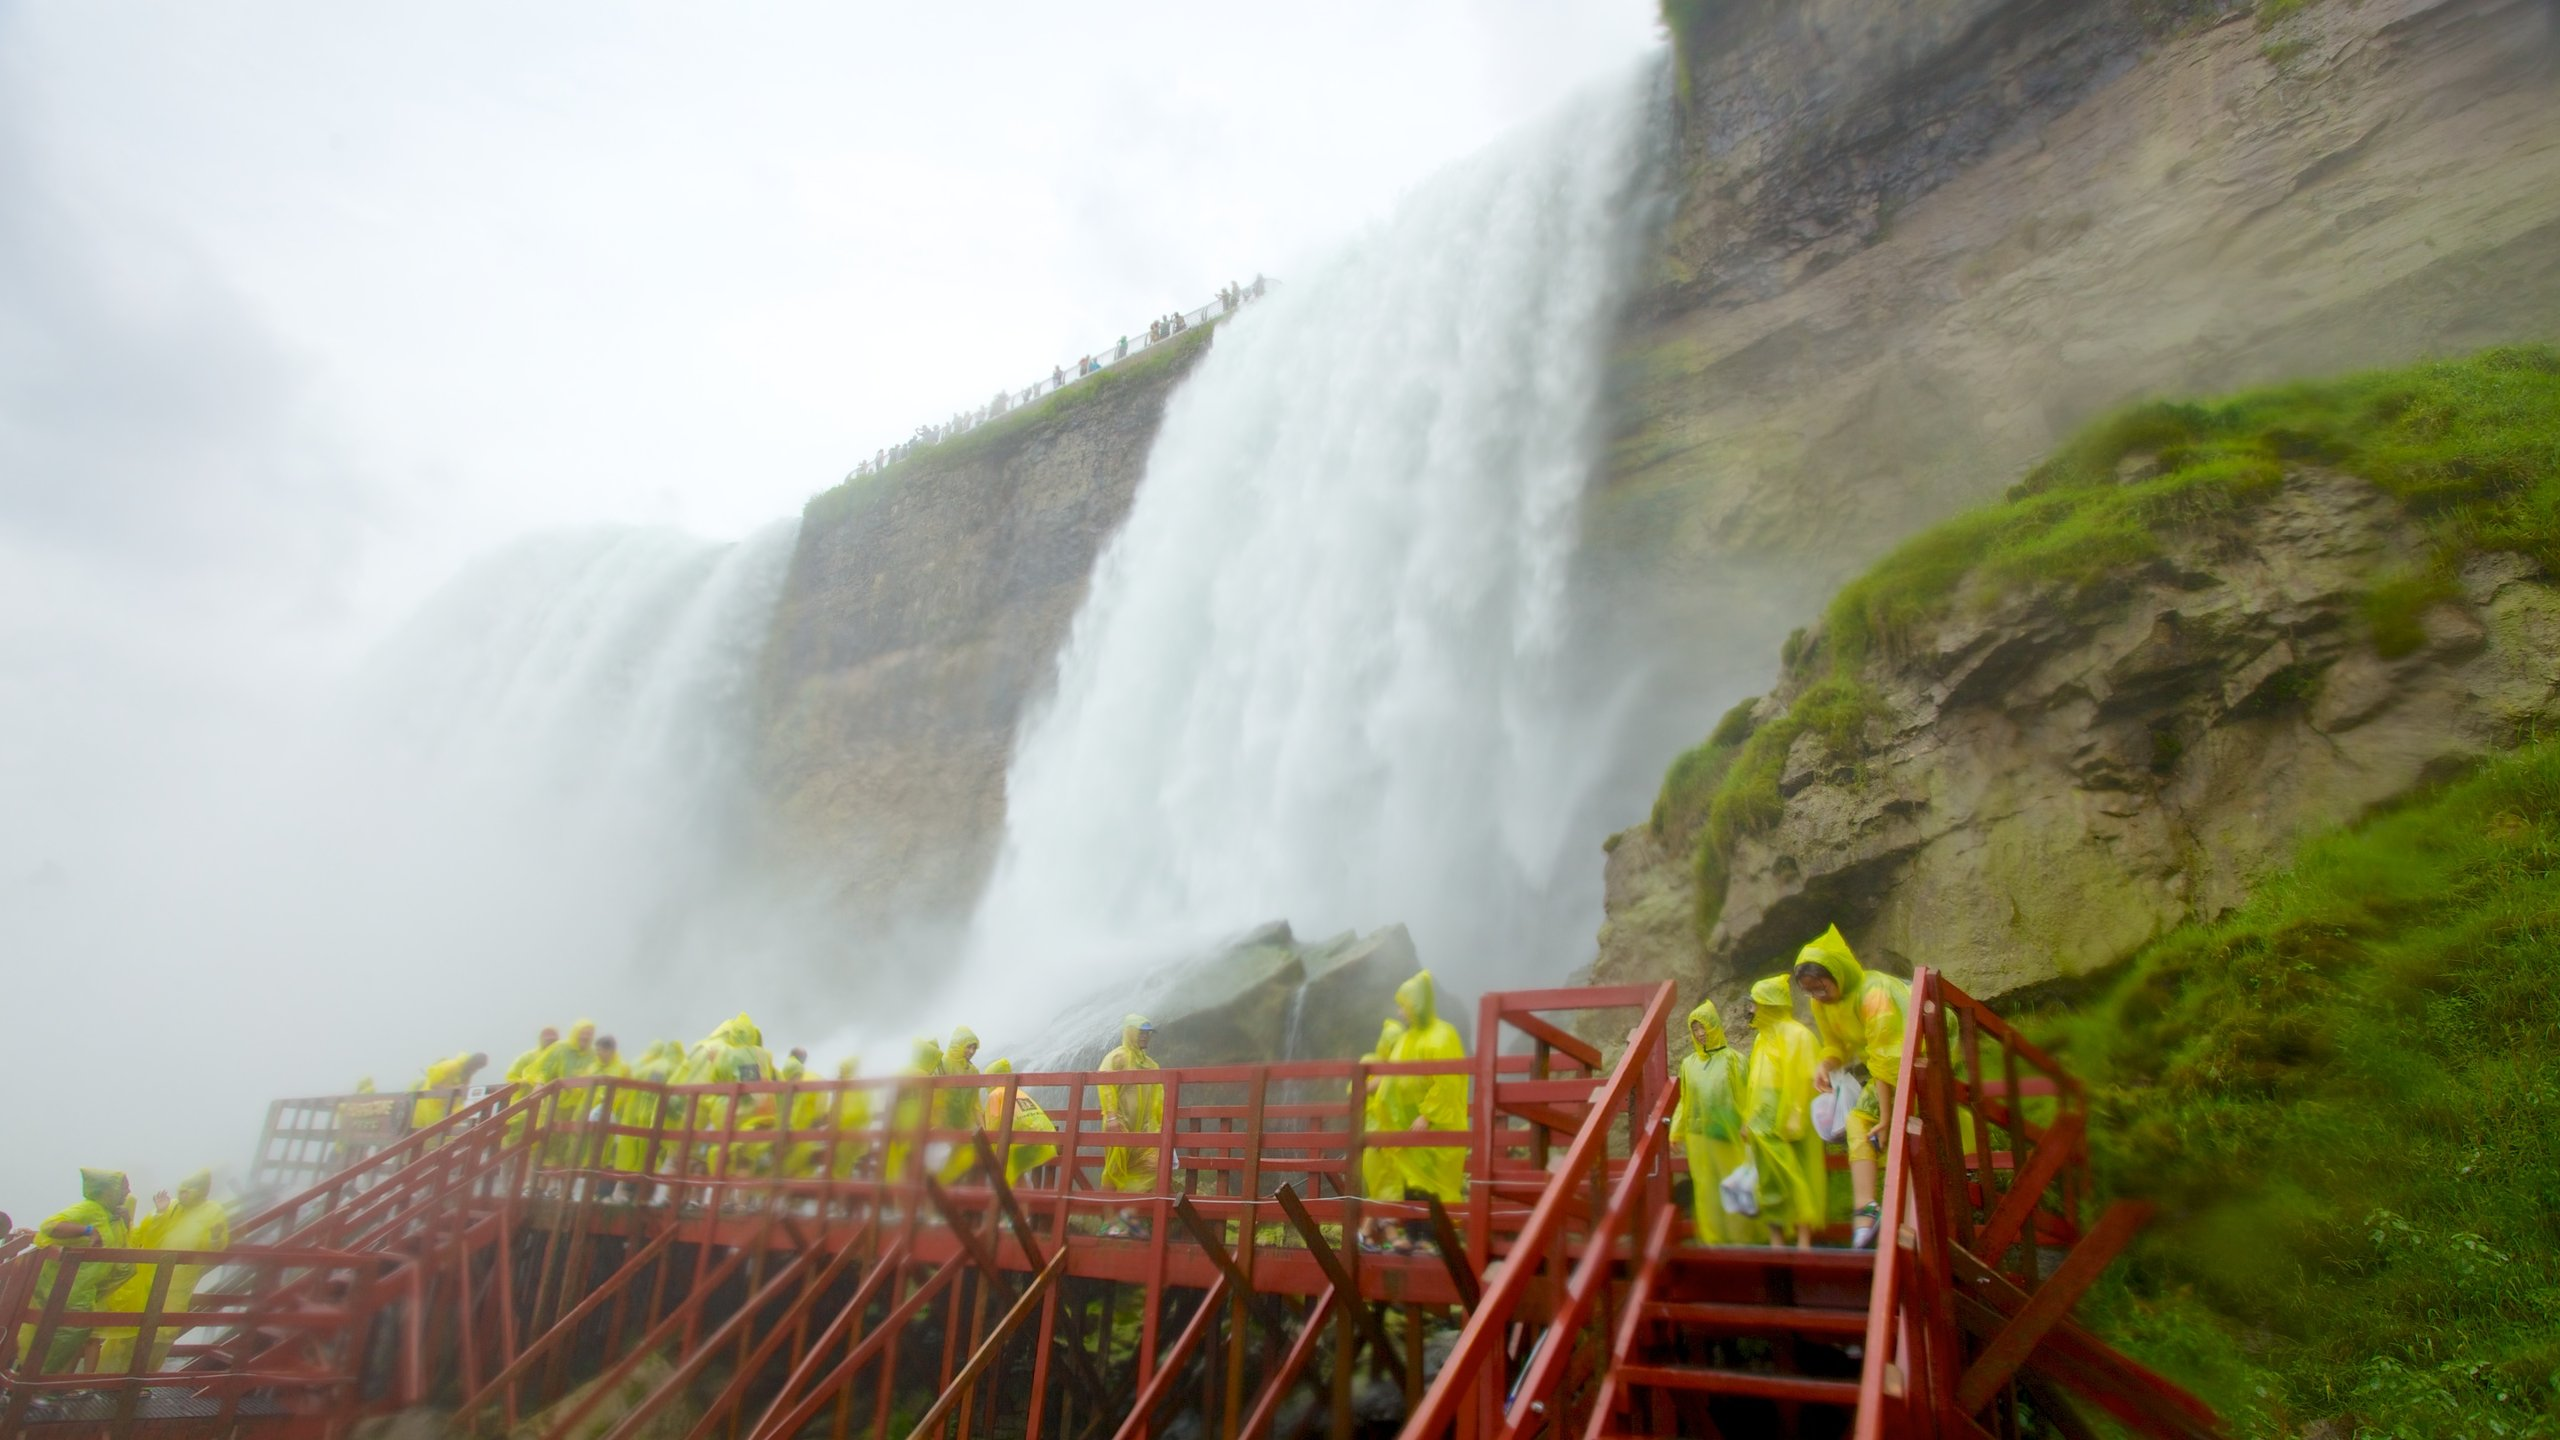 Get close to the thunderous torrent of Niagara Falls on this once-in-a-lifetime tour, which will leave you both soaked and exhilarated.